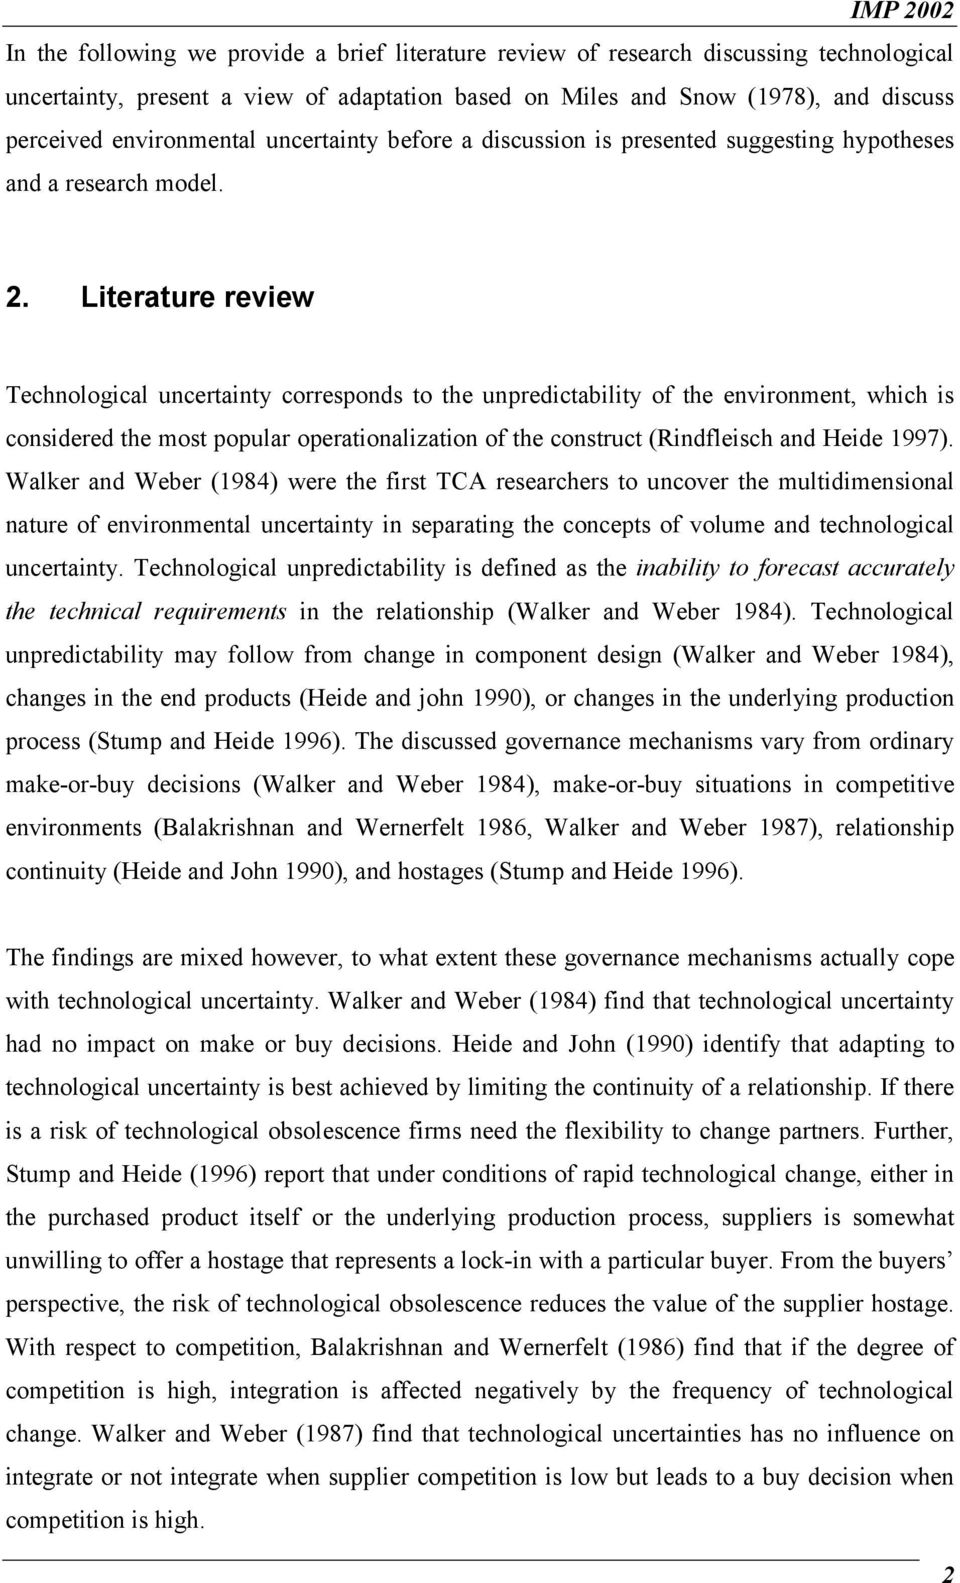 Literature review Technological uncertainty corresponds to the unpredictability of the environment, which is considered the most popular operationalization of the construct (Rindfleisch and Heide